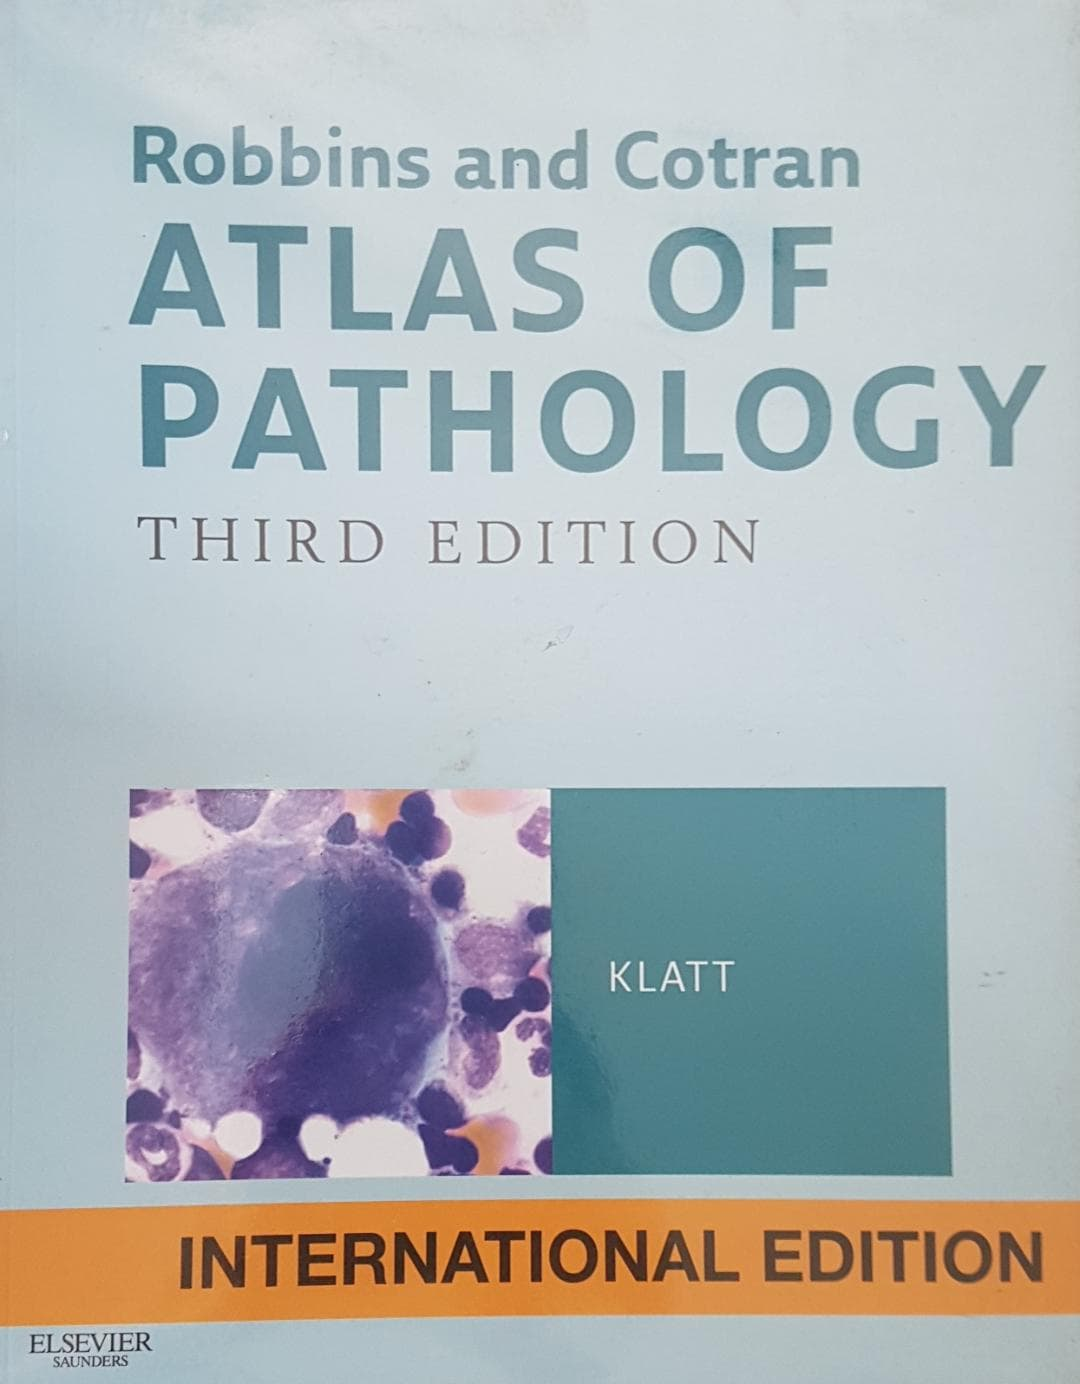 [ORIGINAL] Robbins and Cortran Atlas of Pathology 3e